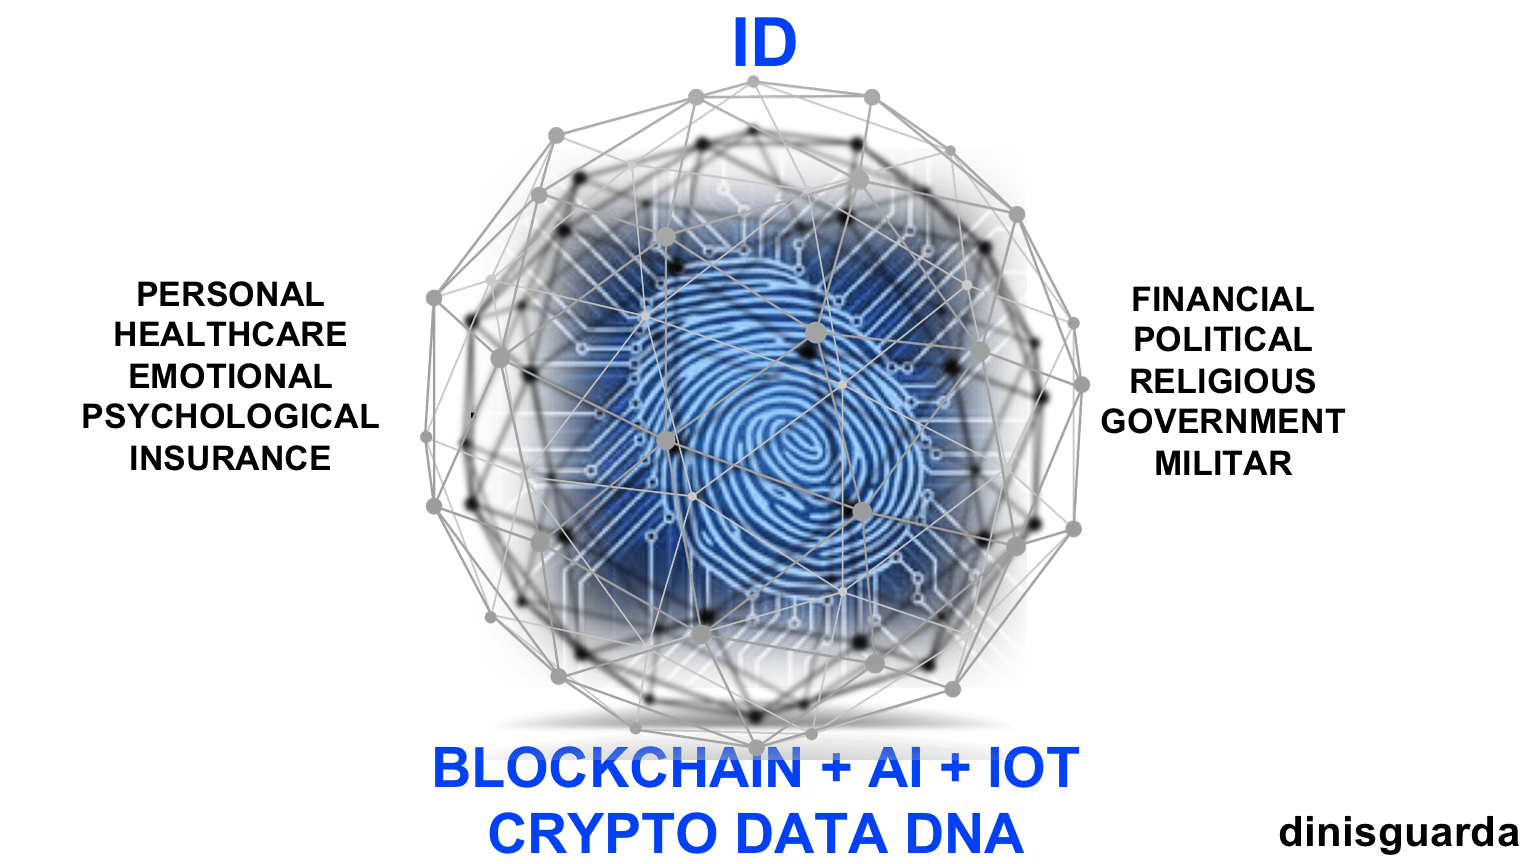 Blockchain ID matric by Dinis Guarda